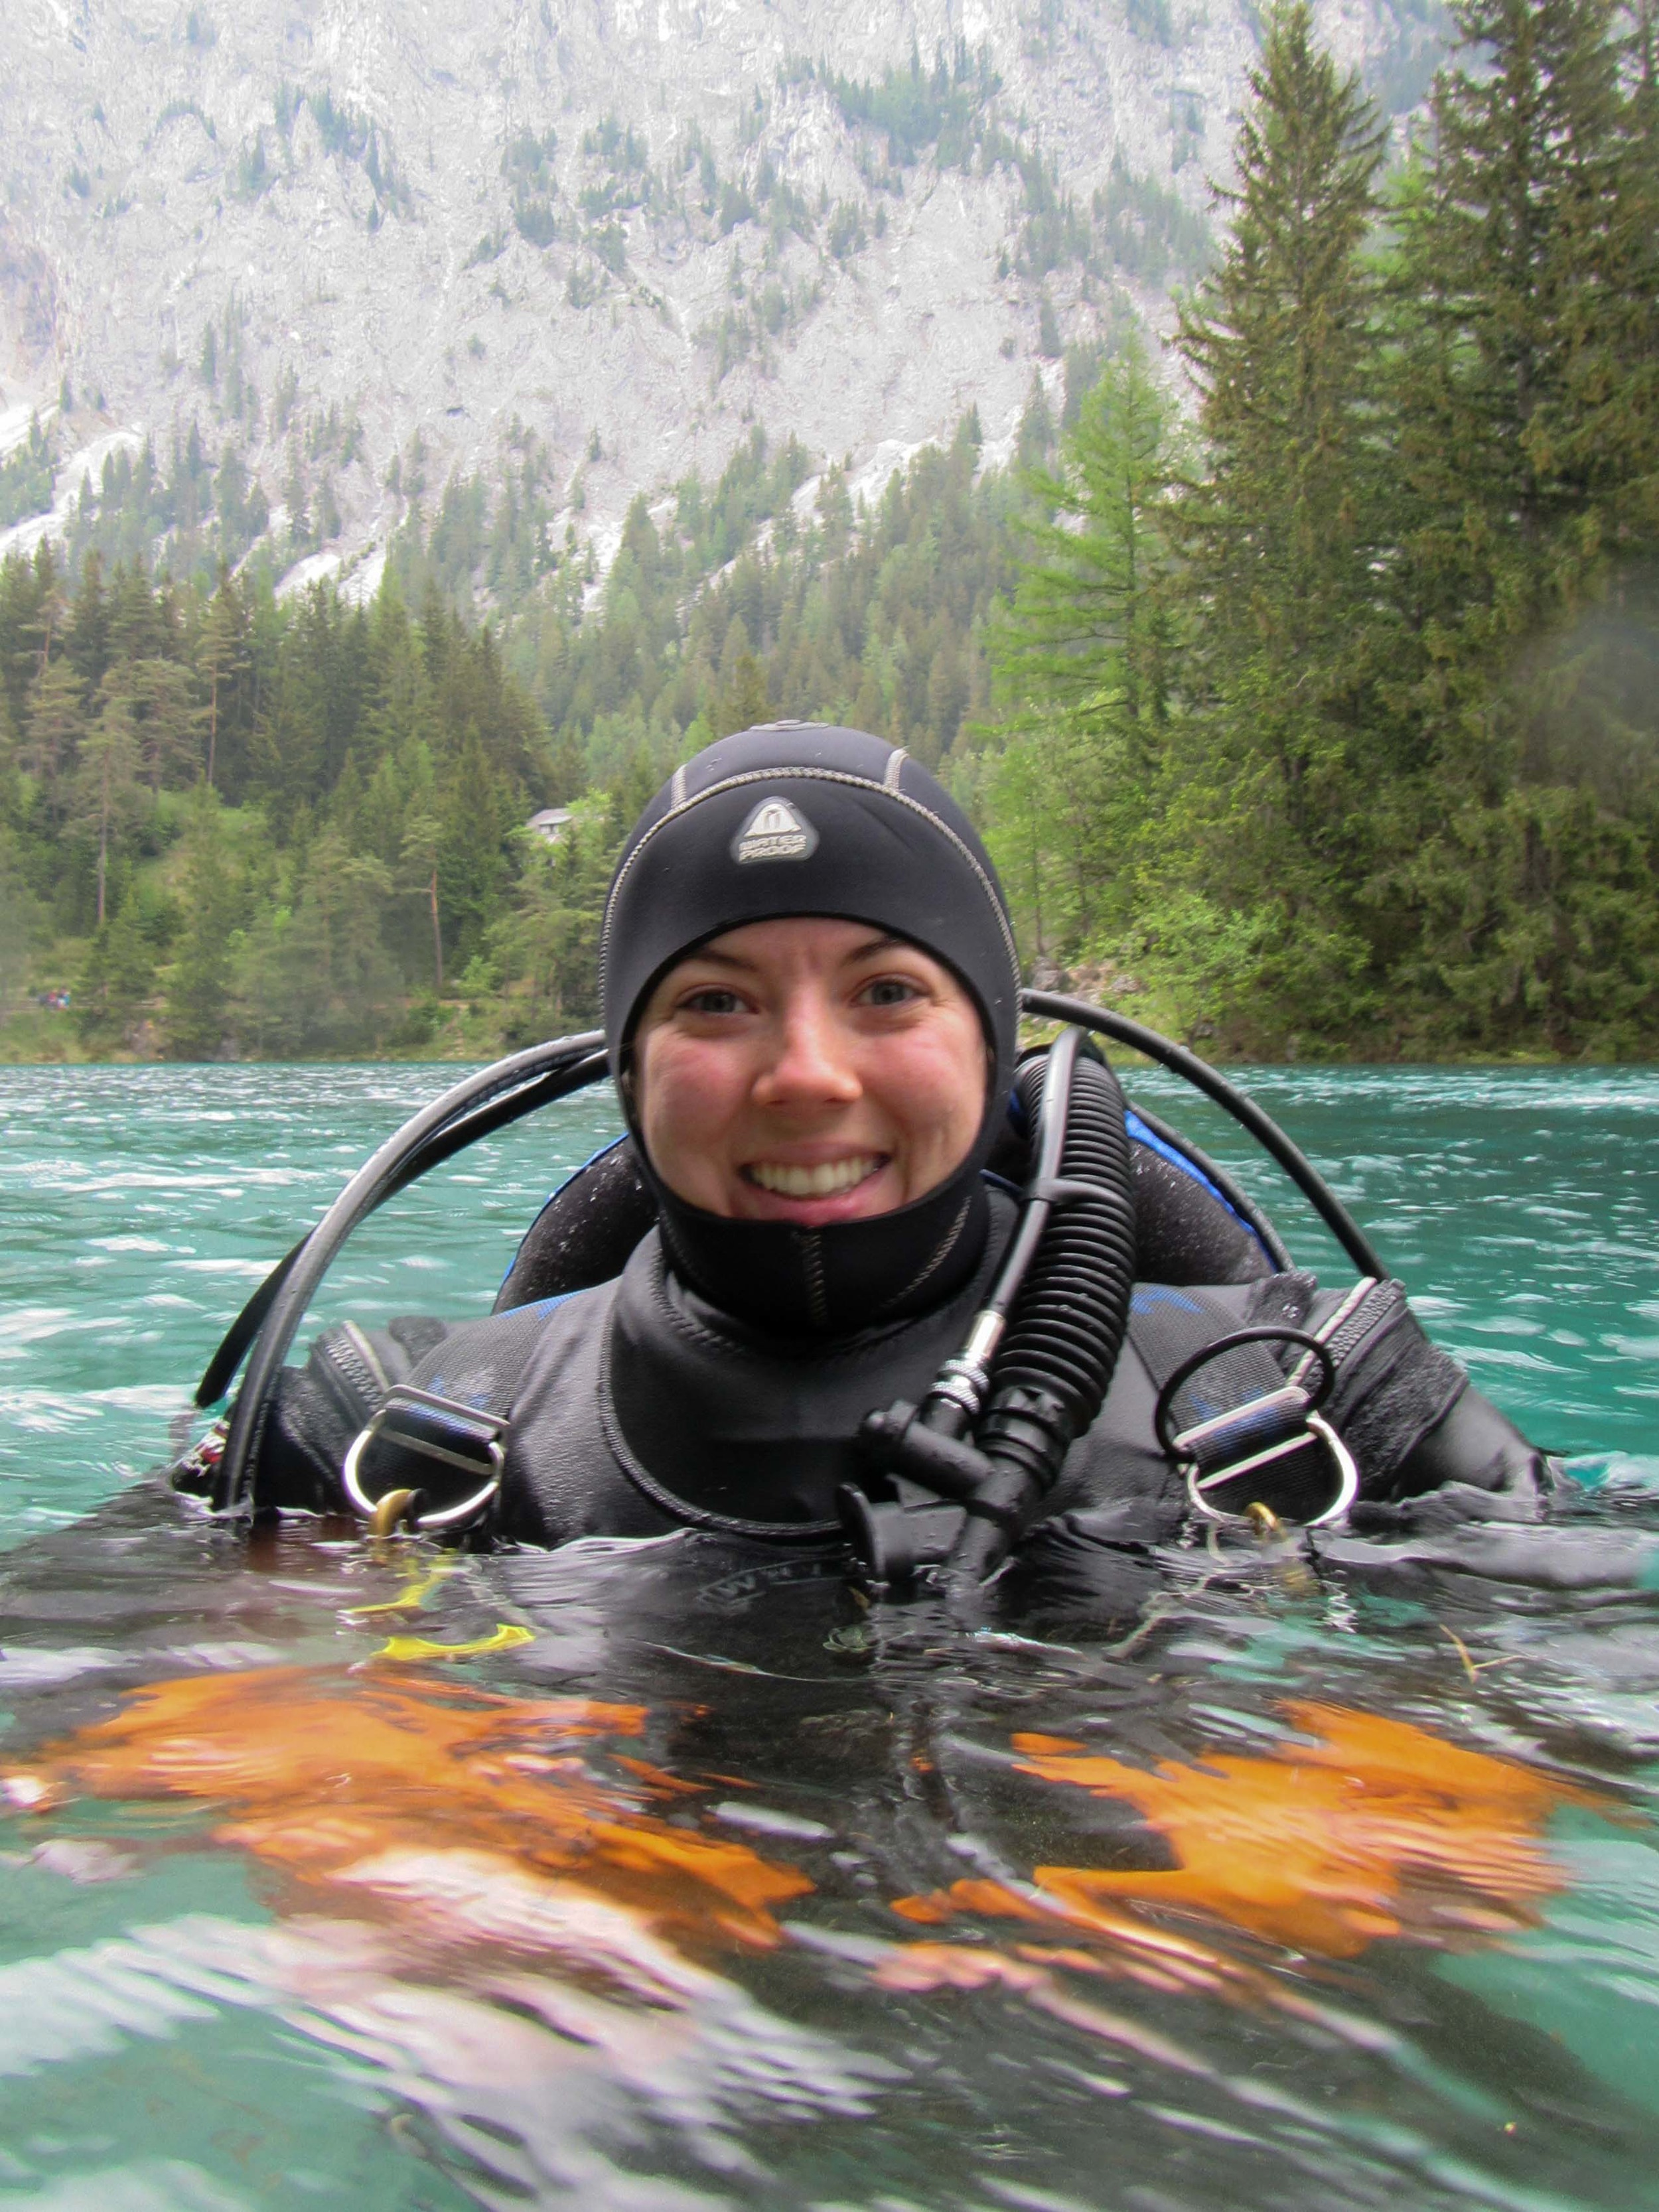 Happy after some great dives!